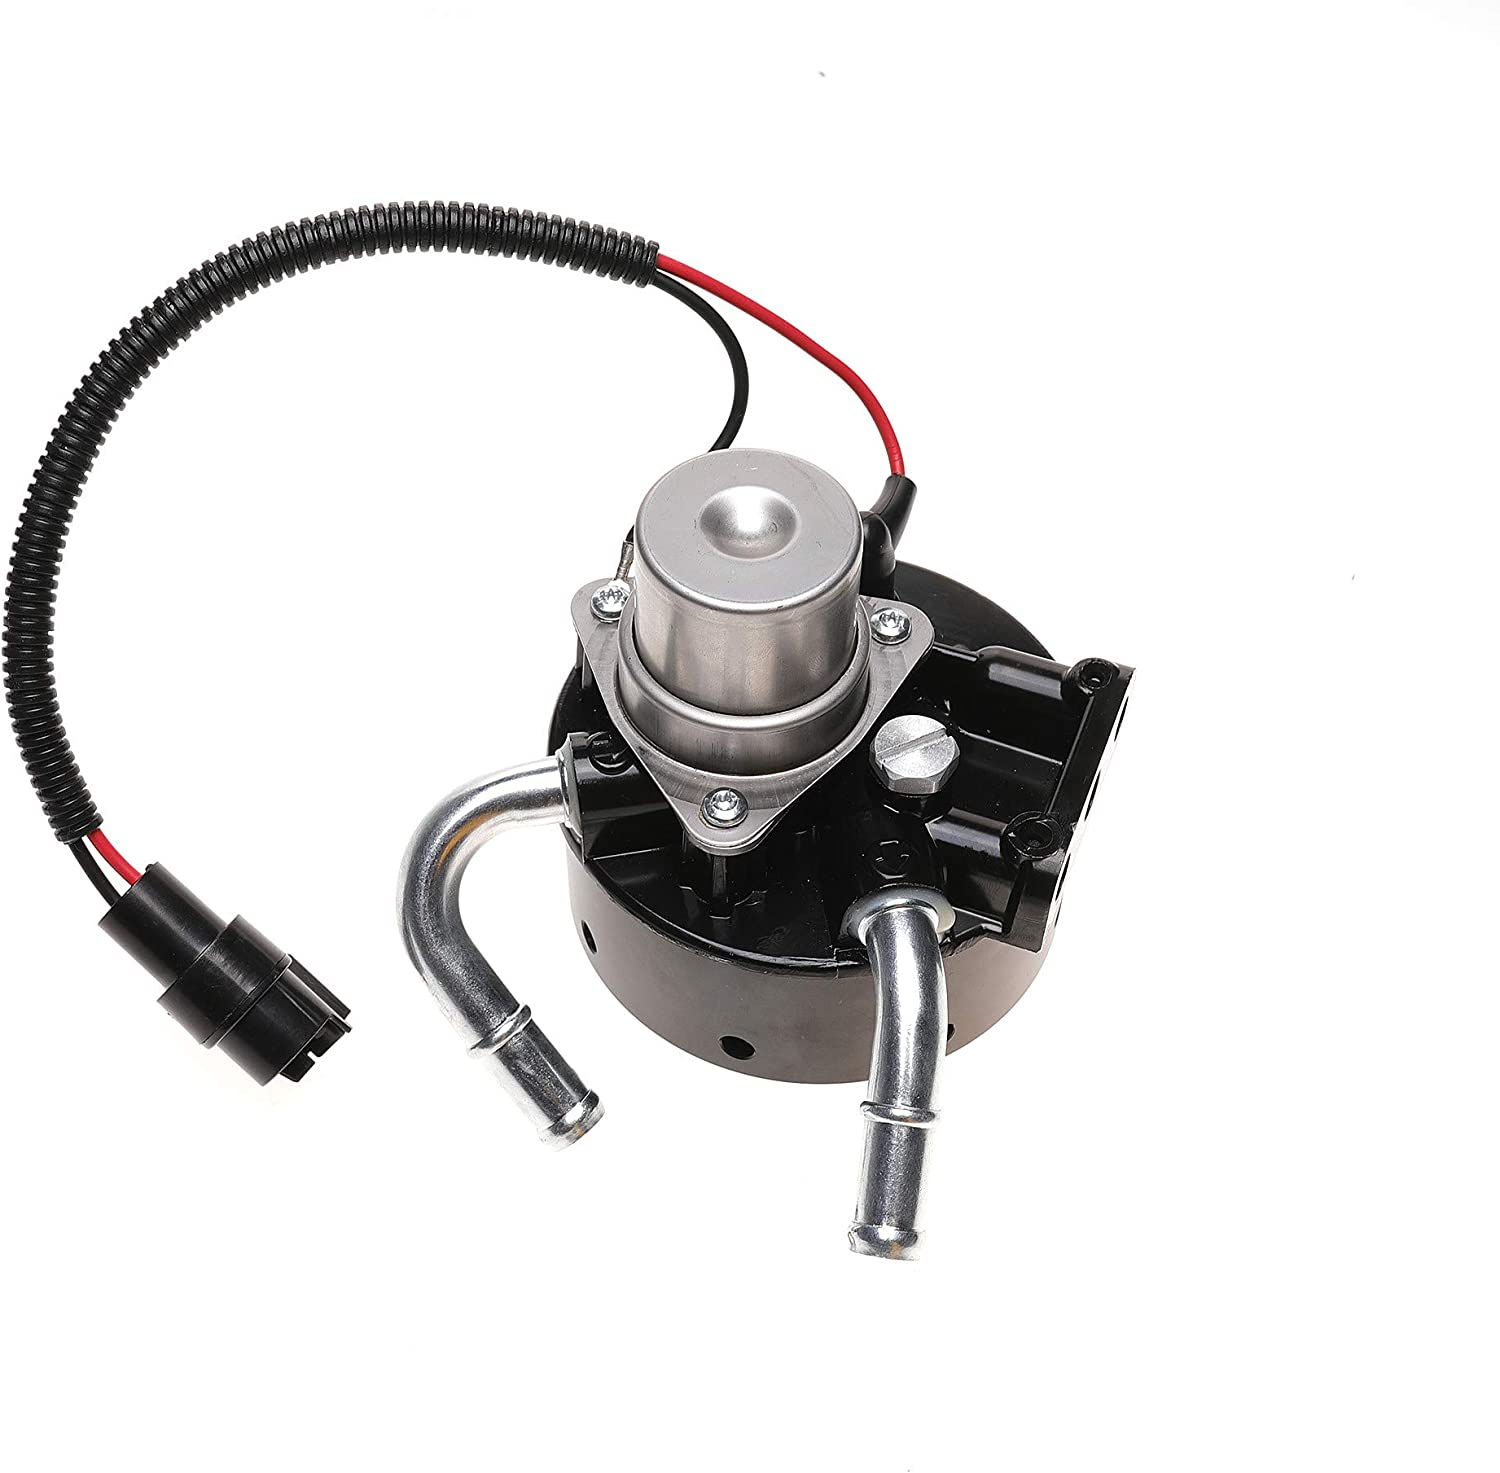 [SCHEMATICS_4FD]  Amazon.com: iFJF 12642623 Fuel filter head with Pump and 1R-0750 Adapter  Refit Head Replacement for GM Duramax 6.6L V8 2004-2013 Chevy/GMC Fuel  Filters Diesel Engine: Automotive | Gm Duramax Fuel Filters |  | Amazon.com